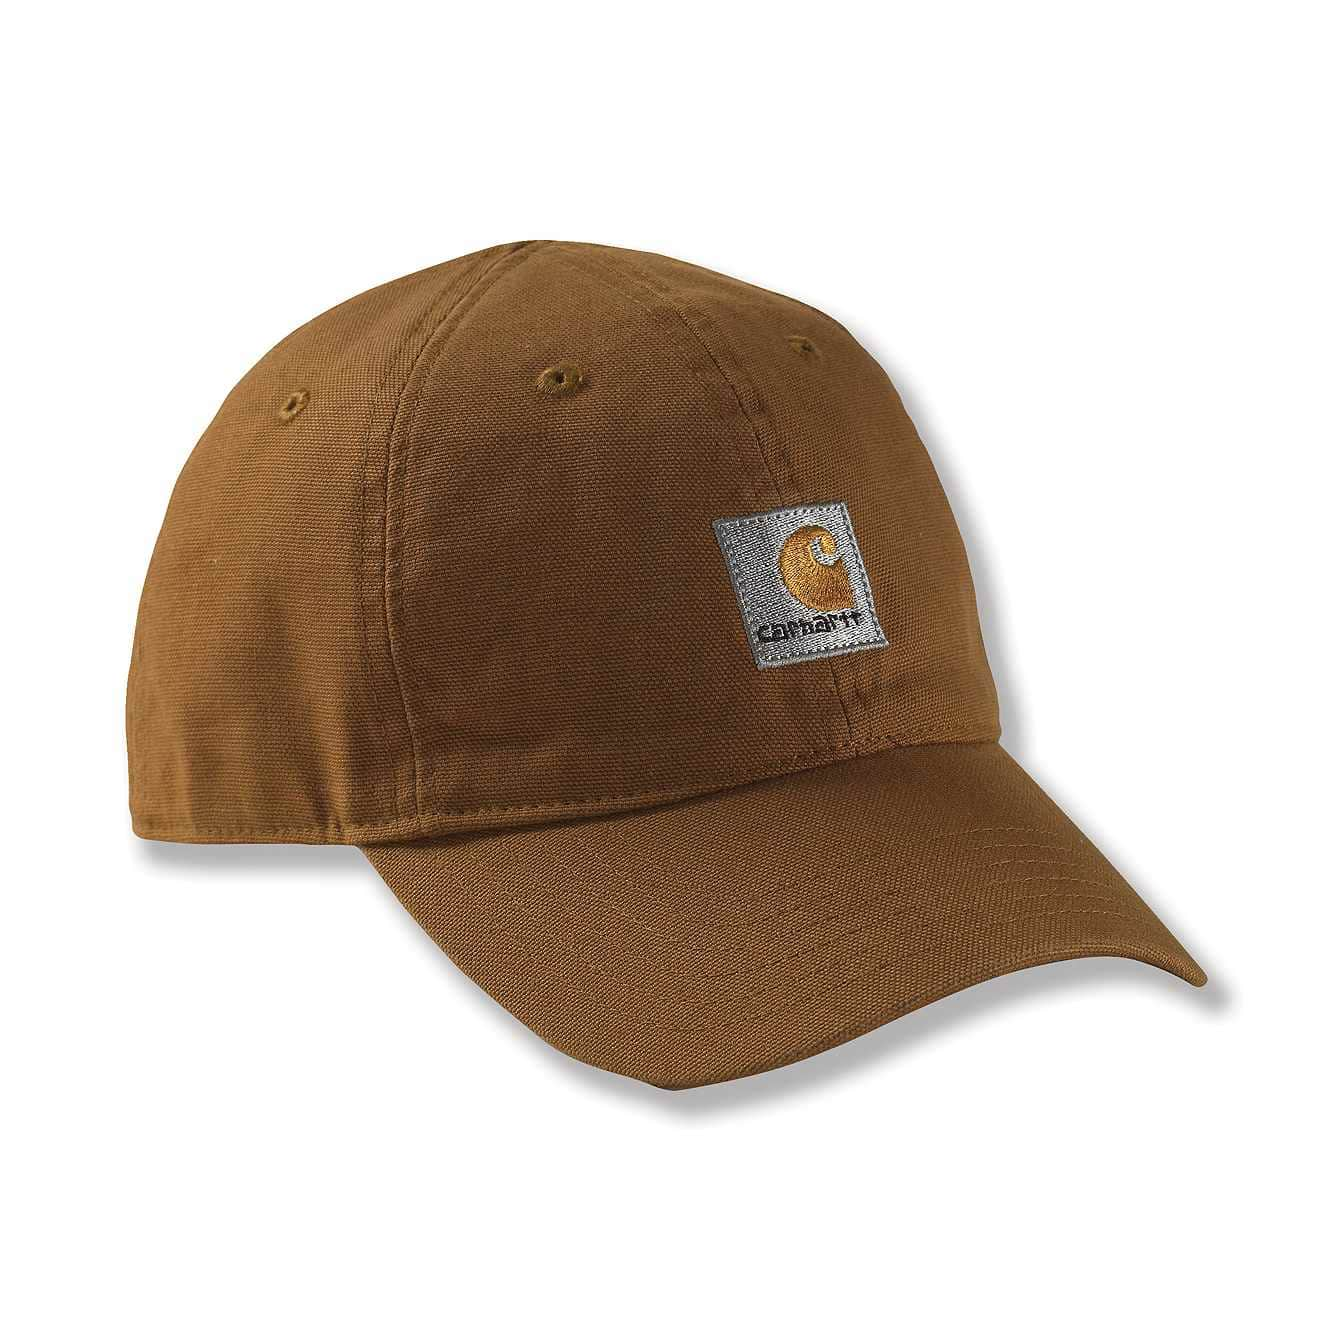 Picture of Signature Canvas Cap in Carhartt Brown